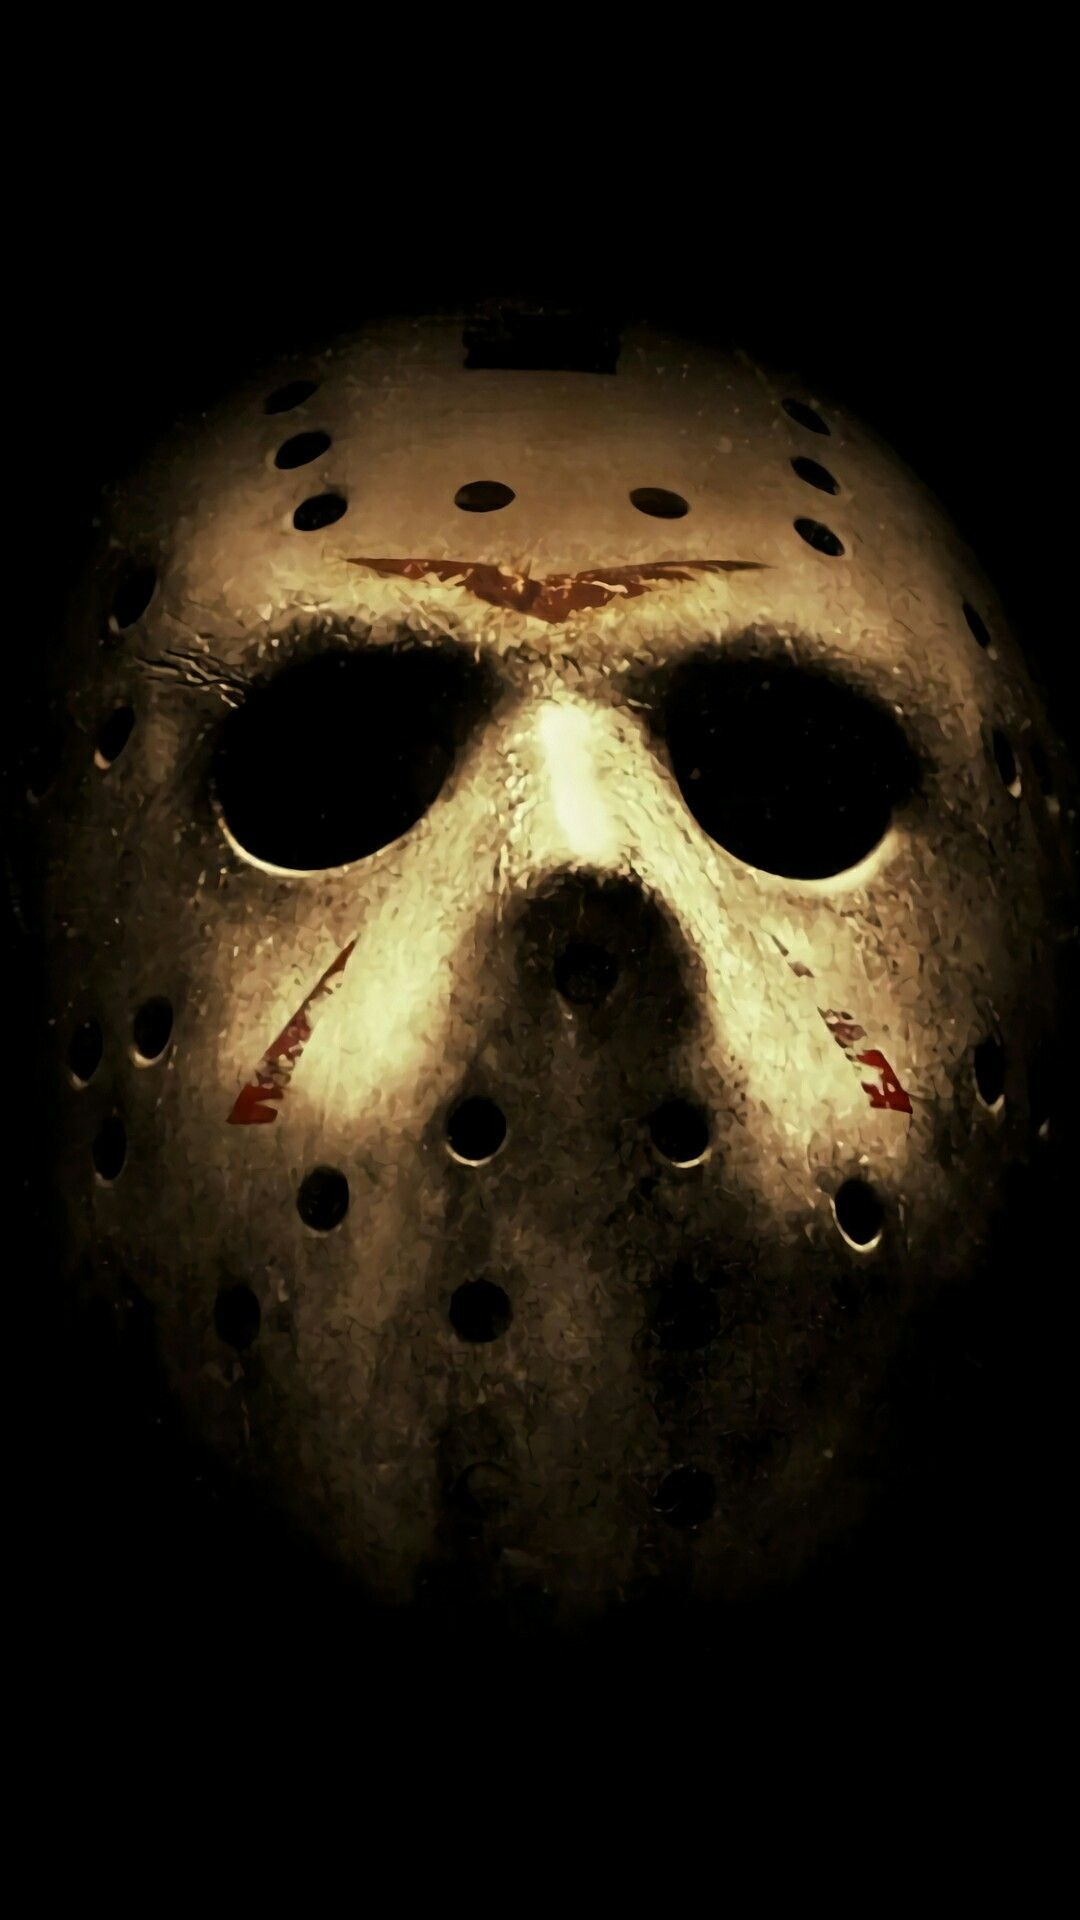 1080x1920 Friday The 13th Games, Happy Friday The 13th, Jason Voorhees Wallpaper,  Scary Movies